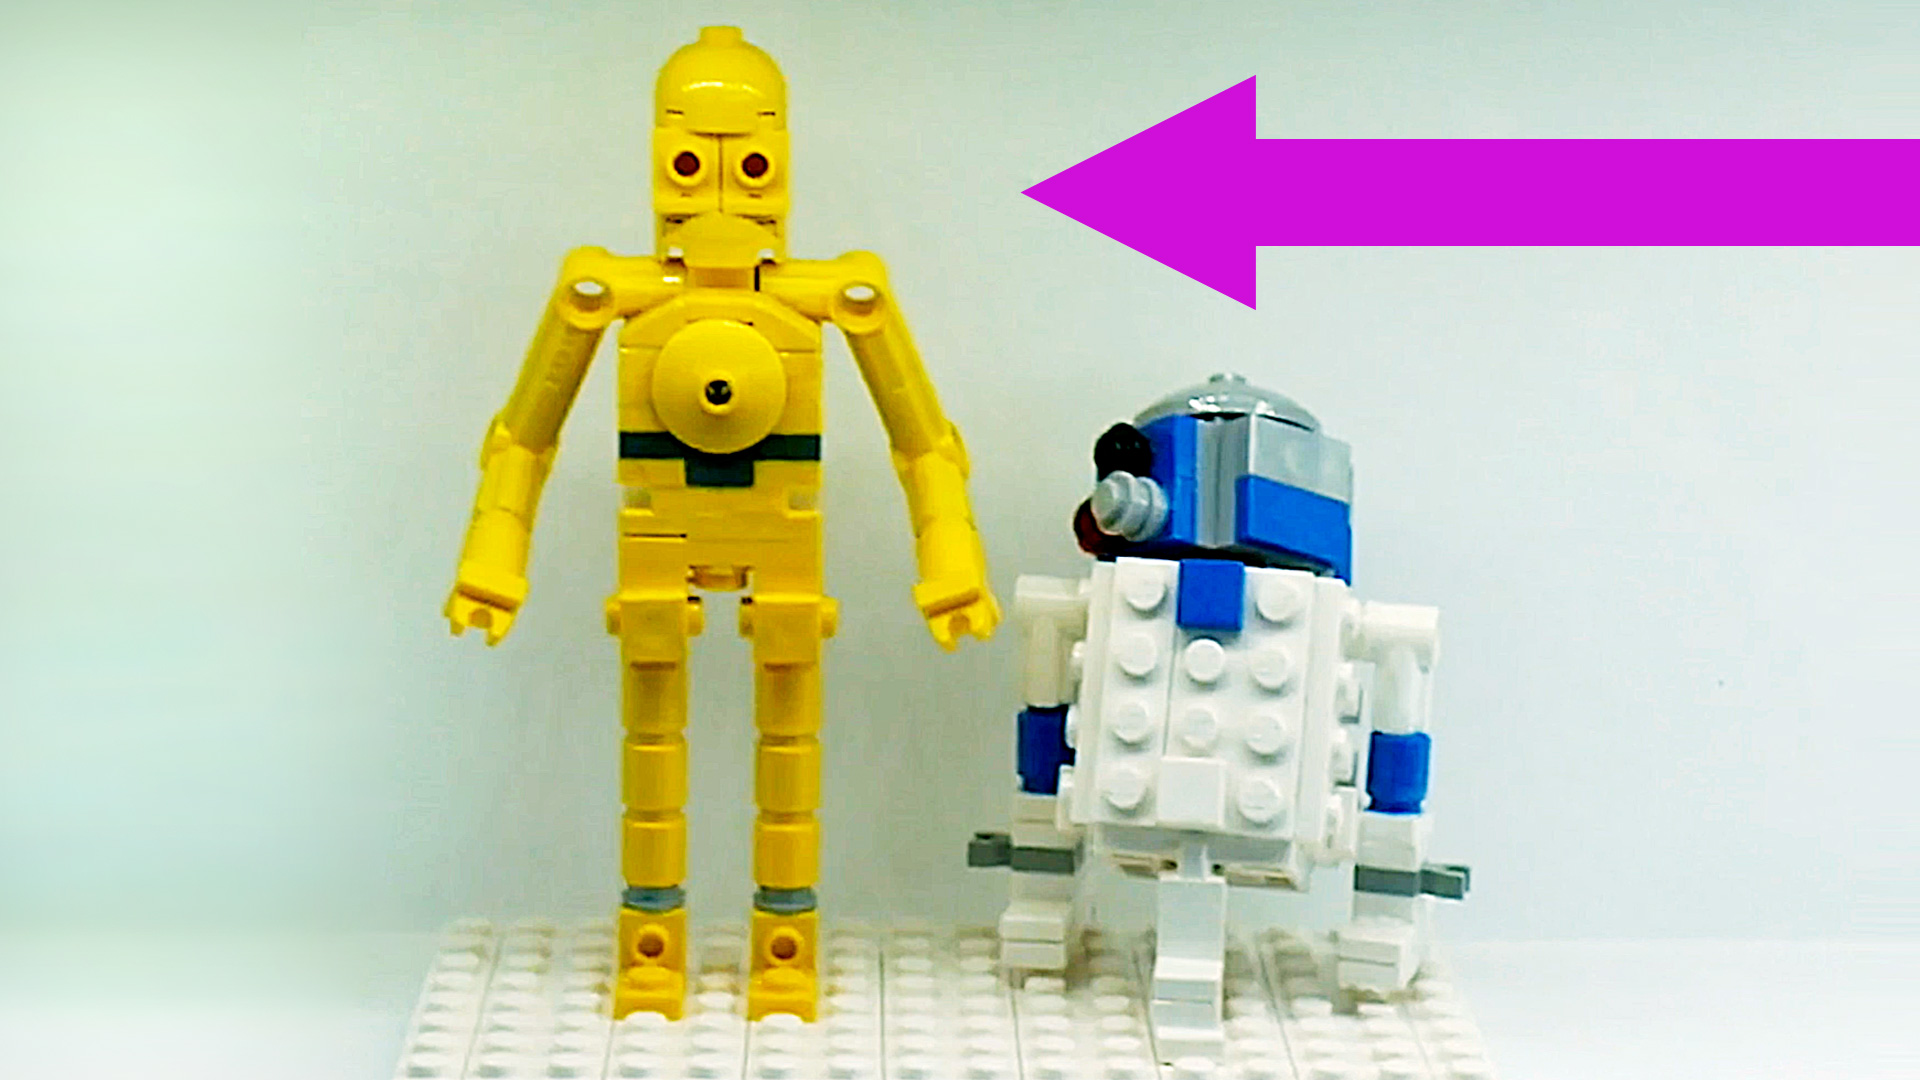 Lego Star Wars Figures at Legoland Windsor | C3PO and R2D2 minifigs